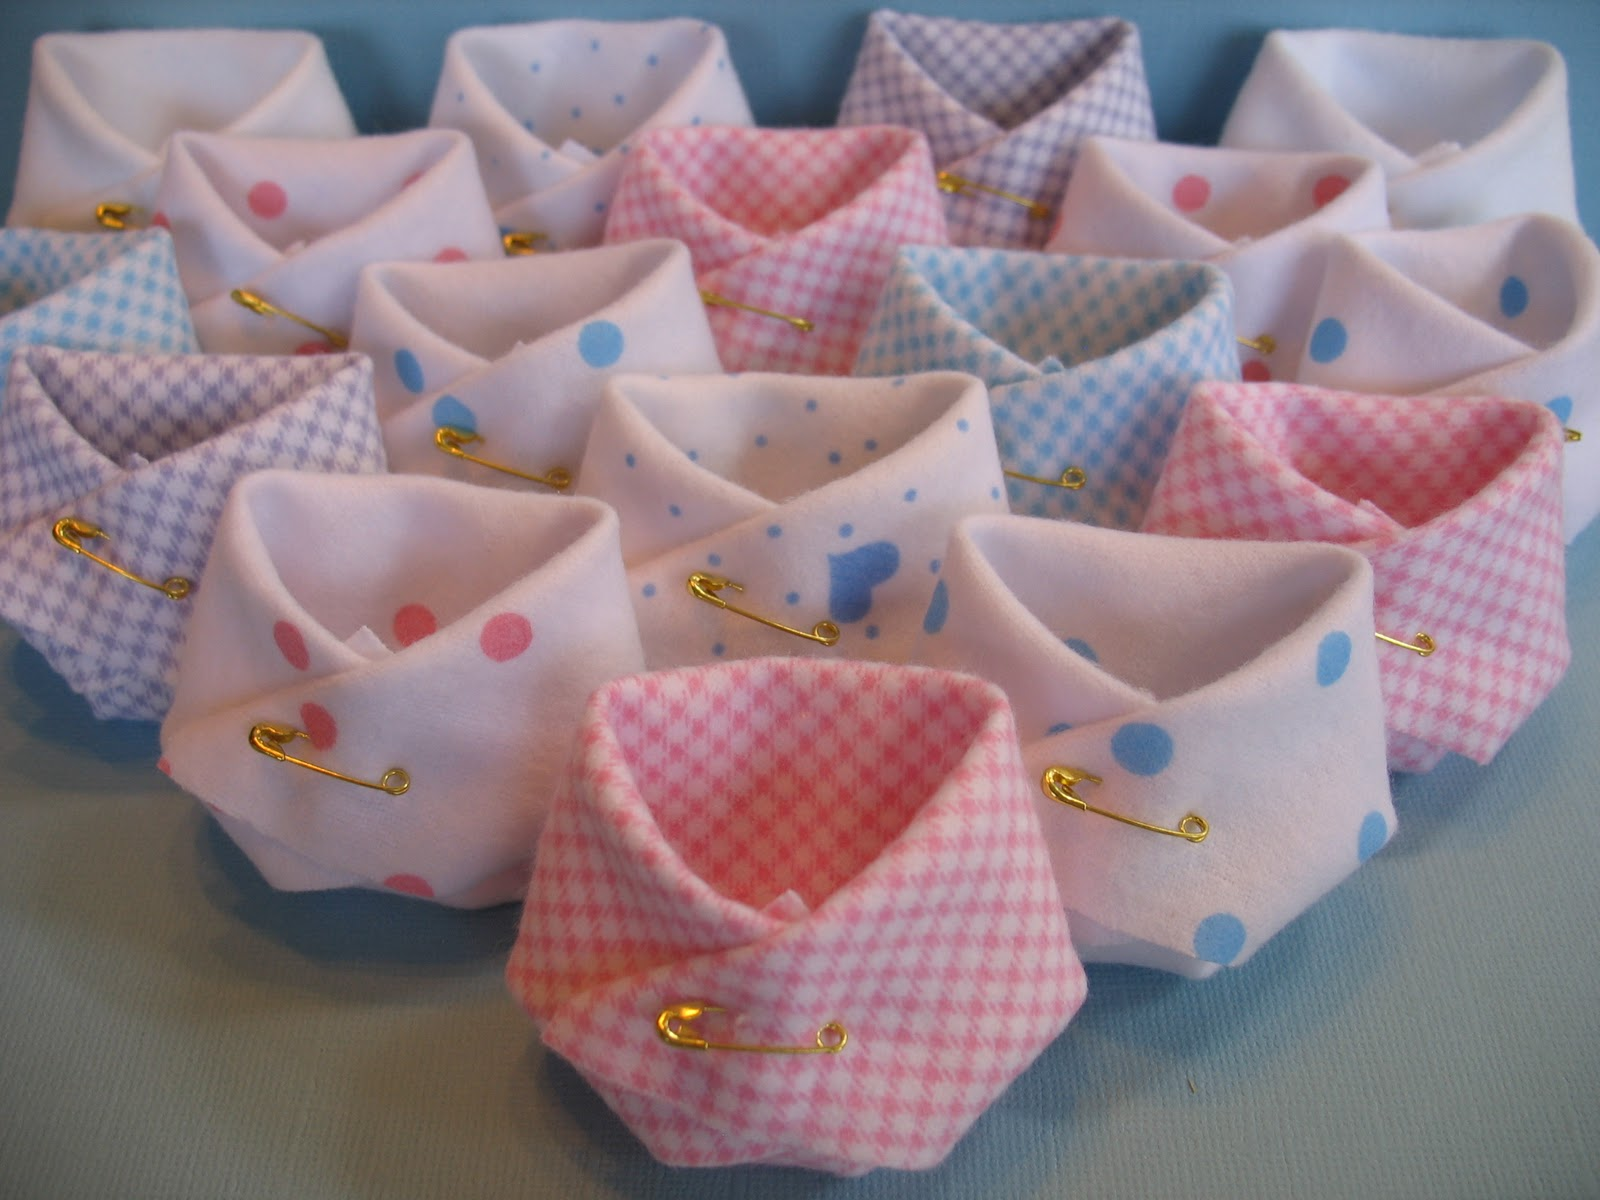 Baby Shower Party Favor Ideas 1600 x 1200